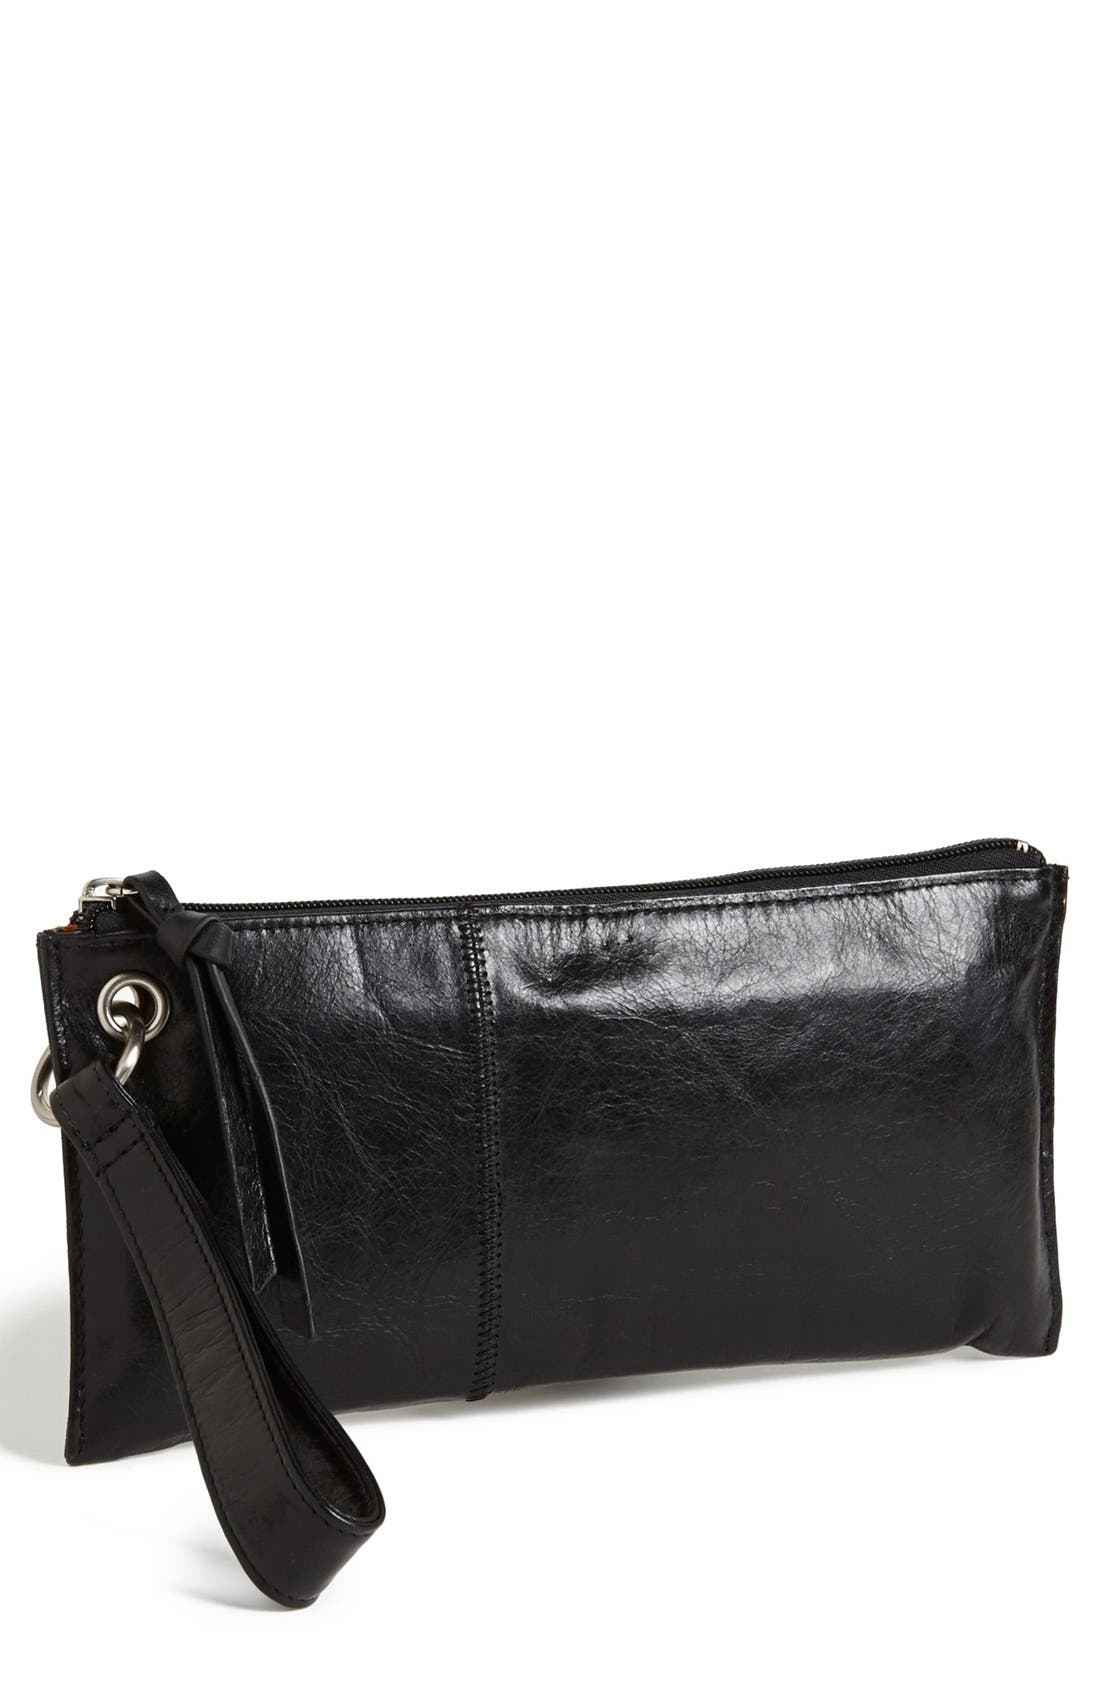 Alternate Image 1 Selected - Hobo 'Vida' Leather Clutch